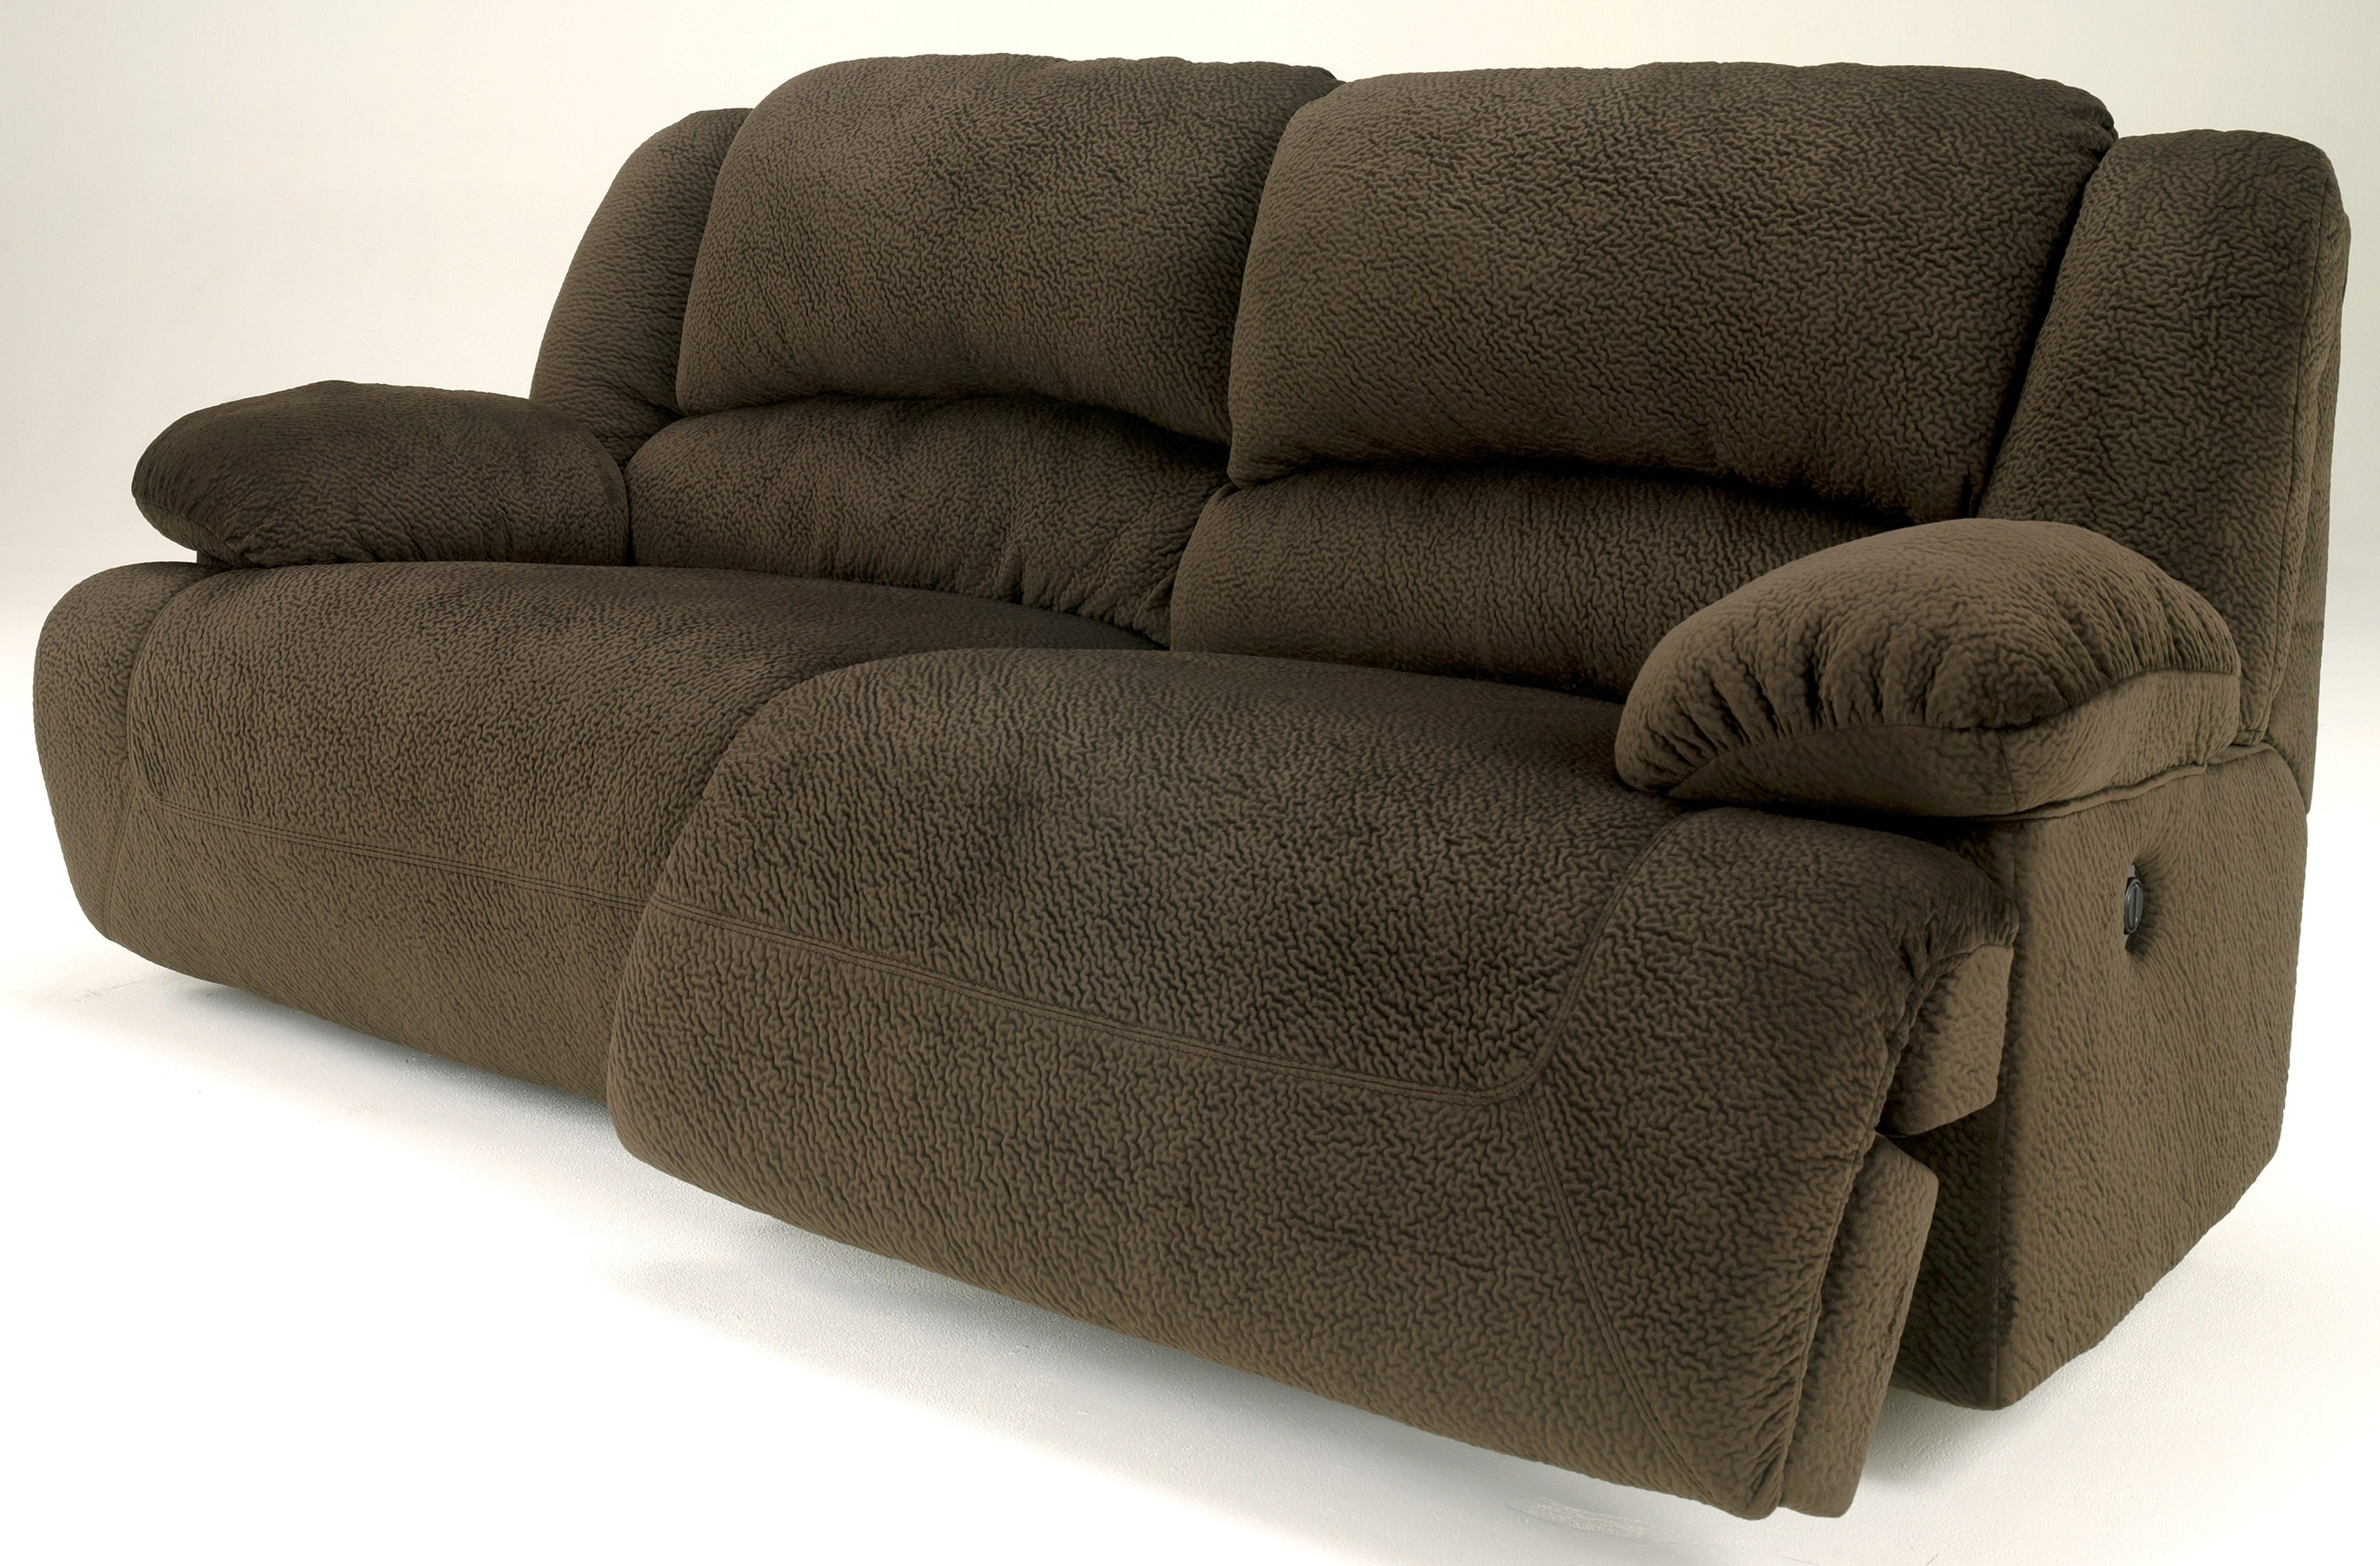 2 Seat Recliner Sofas Within Widely Used Signature Designashley Toletta Chocolate 2 Seat Reclining Sofa (View 8 of 20)